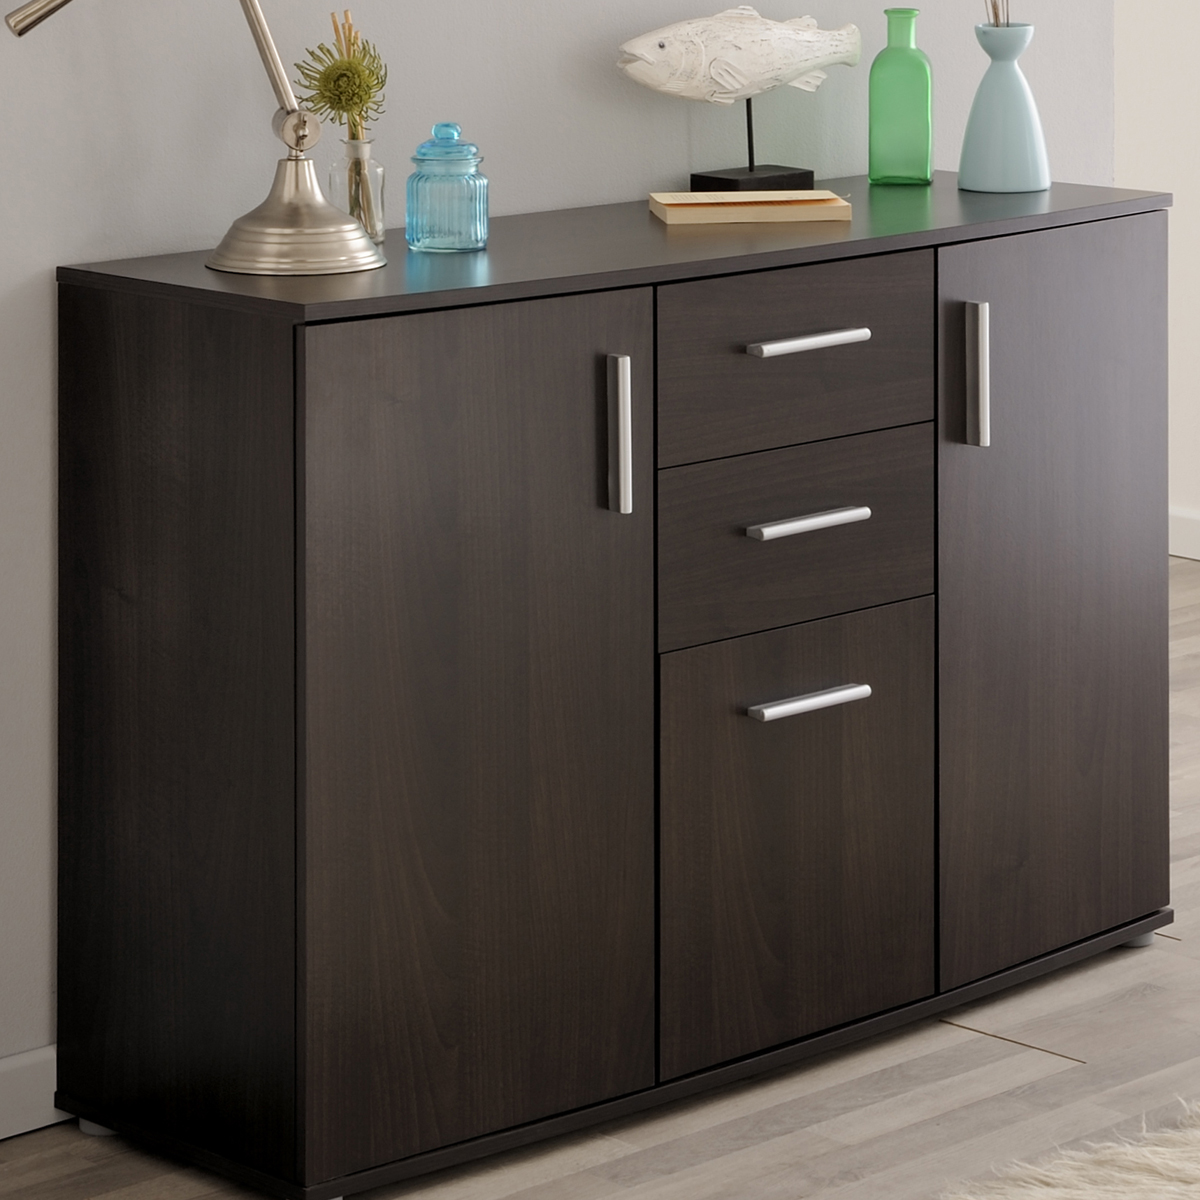 sideboard salto 3 esszimmer anrichte wohnzimmer kommode in. Black Bedroom Furniture Sets. Home Design Ideas